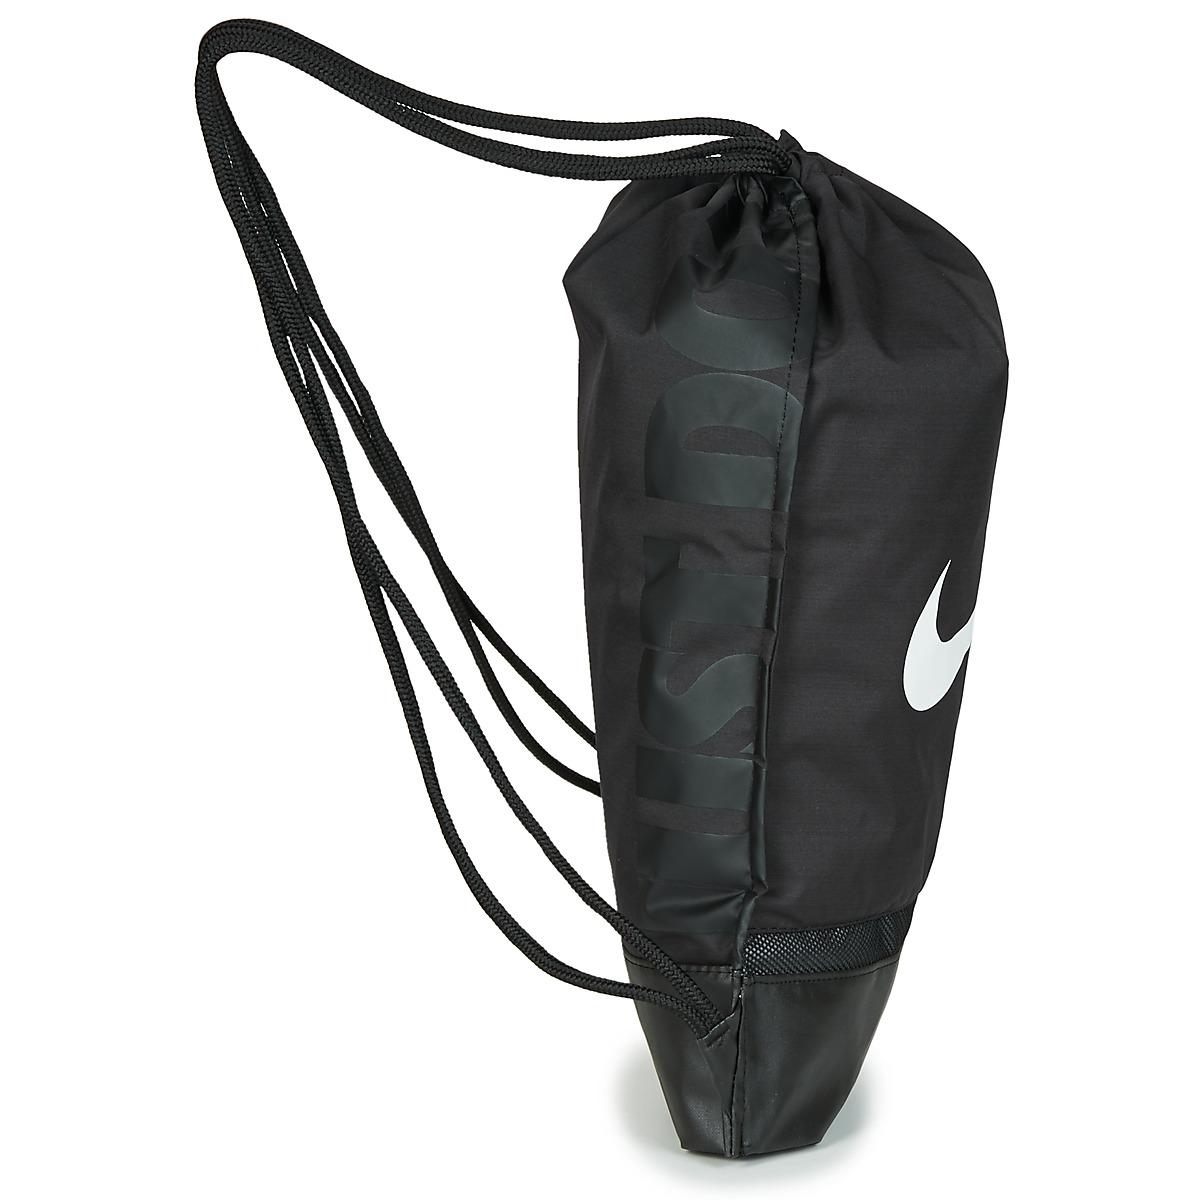 7efb059a266517 Nike Brasilia Training Gymsack Men s Sports Bag In Black in Black ...